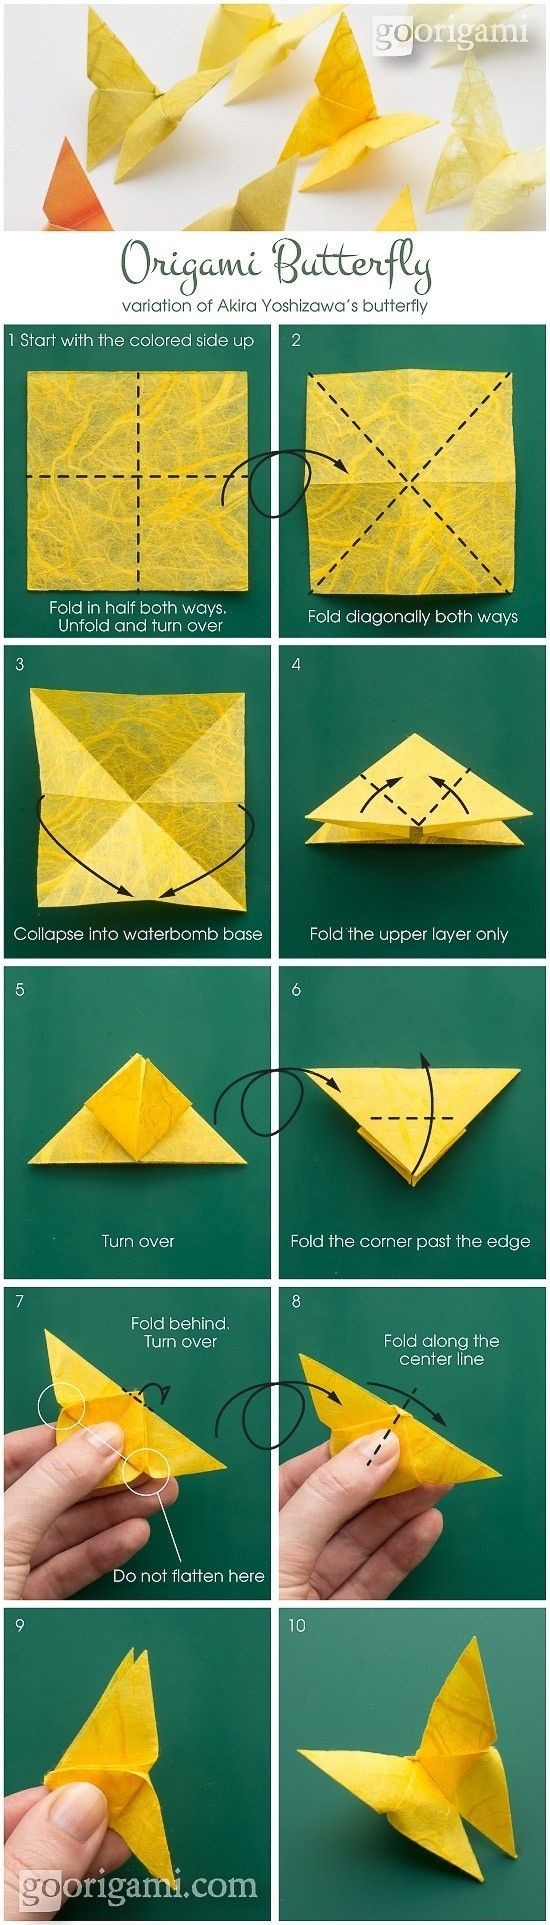 this looks pretty - weekend endeavor? :: in honor of origami master Akira Yoshizawa's 101 birthday :: paper butterfly